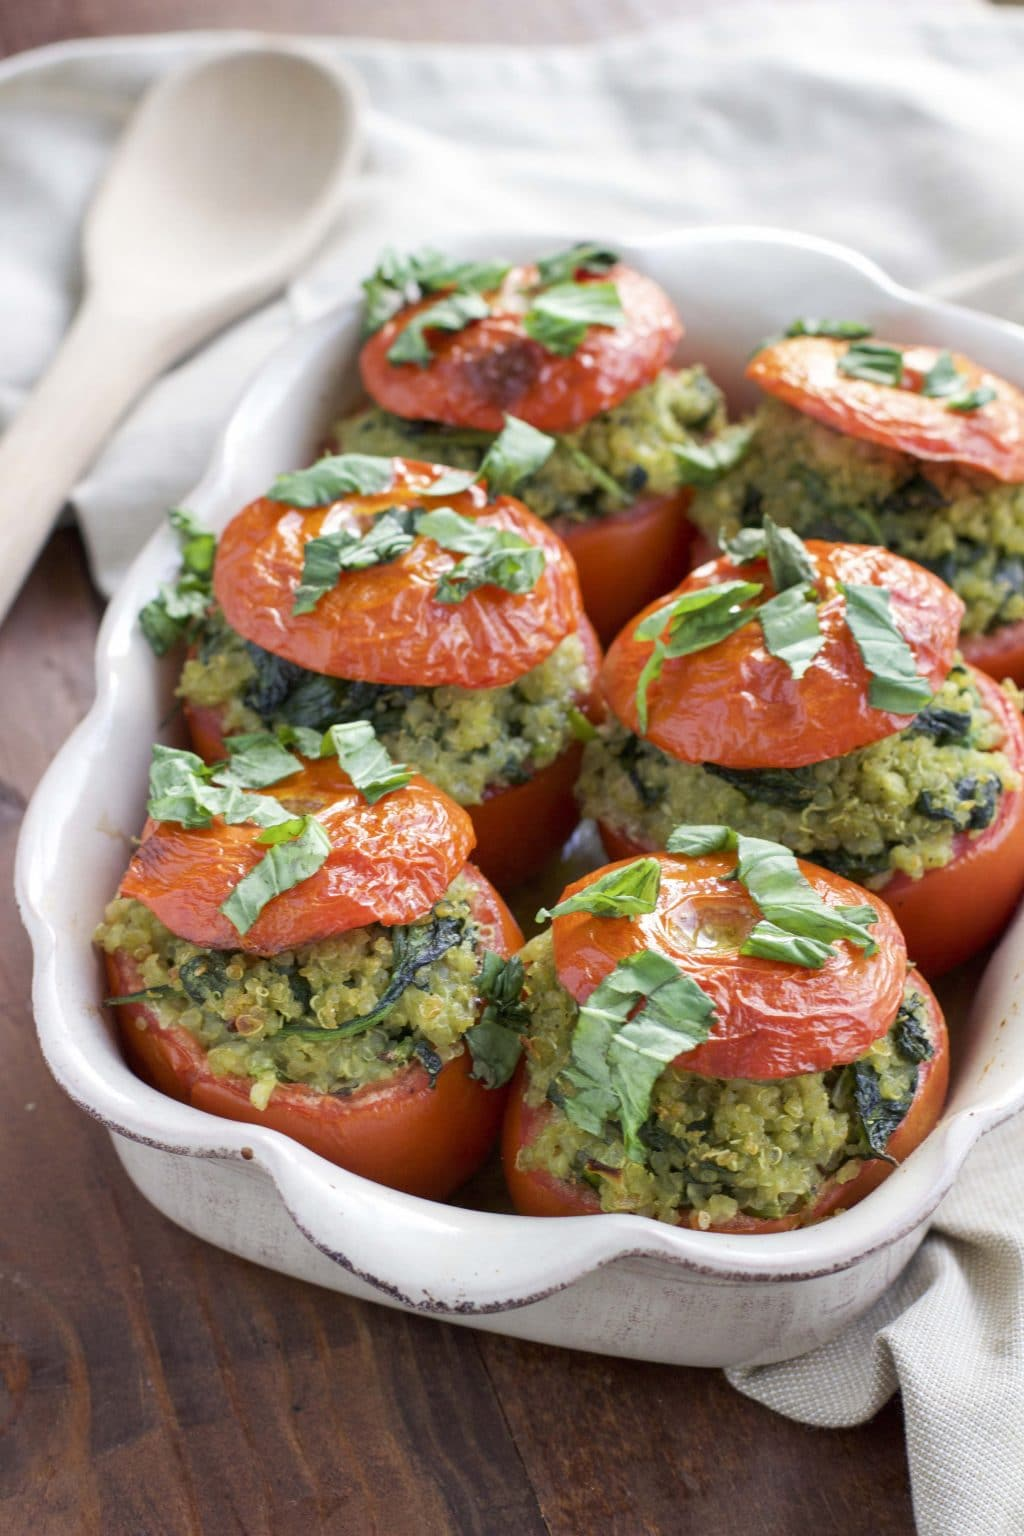 Roasted stuffed pesto tomatoes in a white casserole dish on a rustic background.